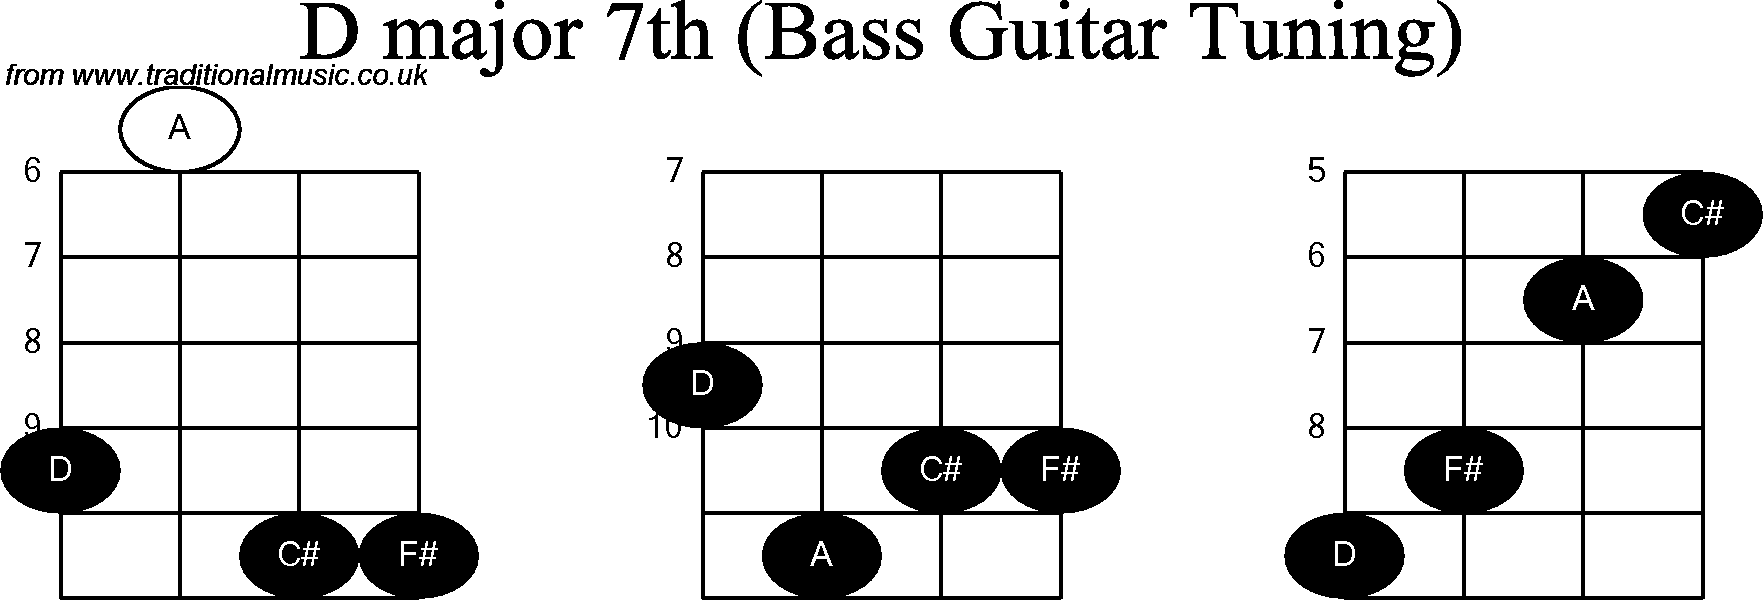 Bass Guitar Chord Diagrams For D Major 7th